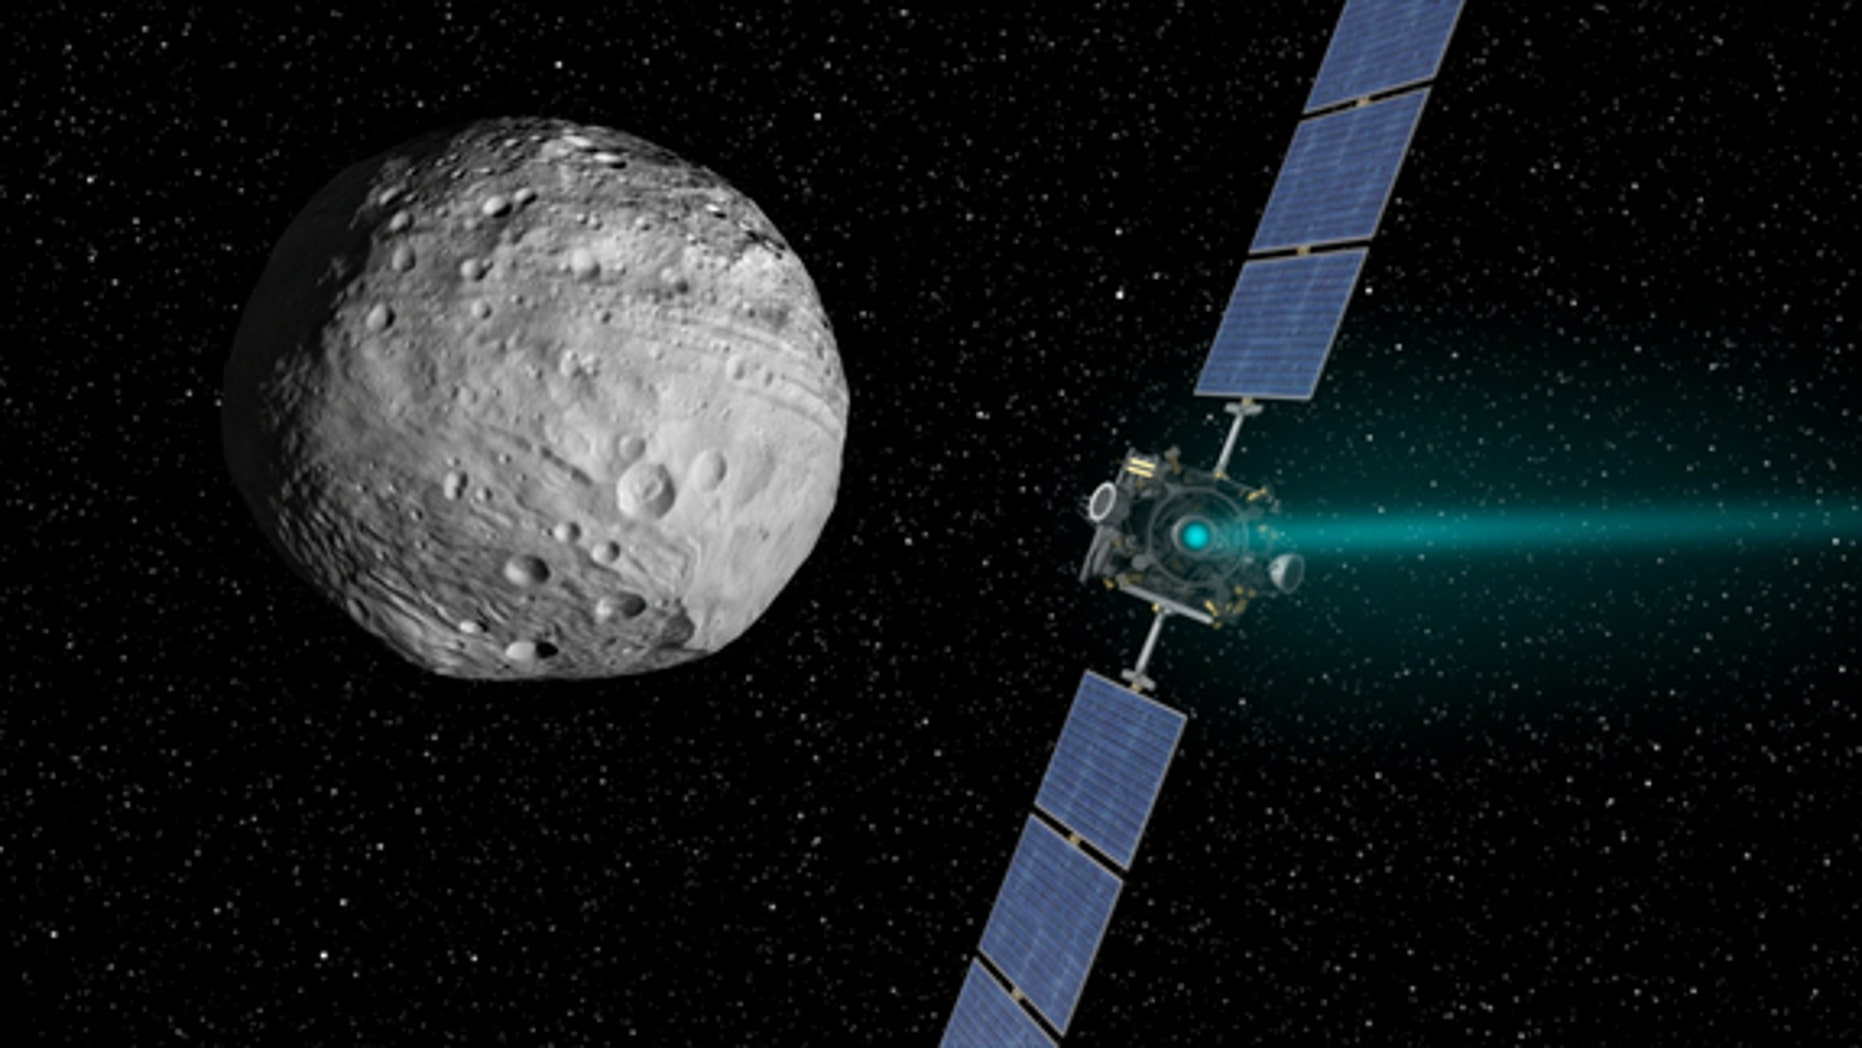 NASA's Dawn spacecraft arrived at the giant asteroid Vesta in July 2011 and is set to depart on Sept. 4, 2012 PDT (Sept. 5 EDT).